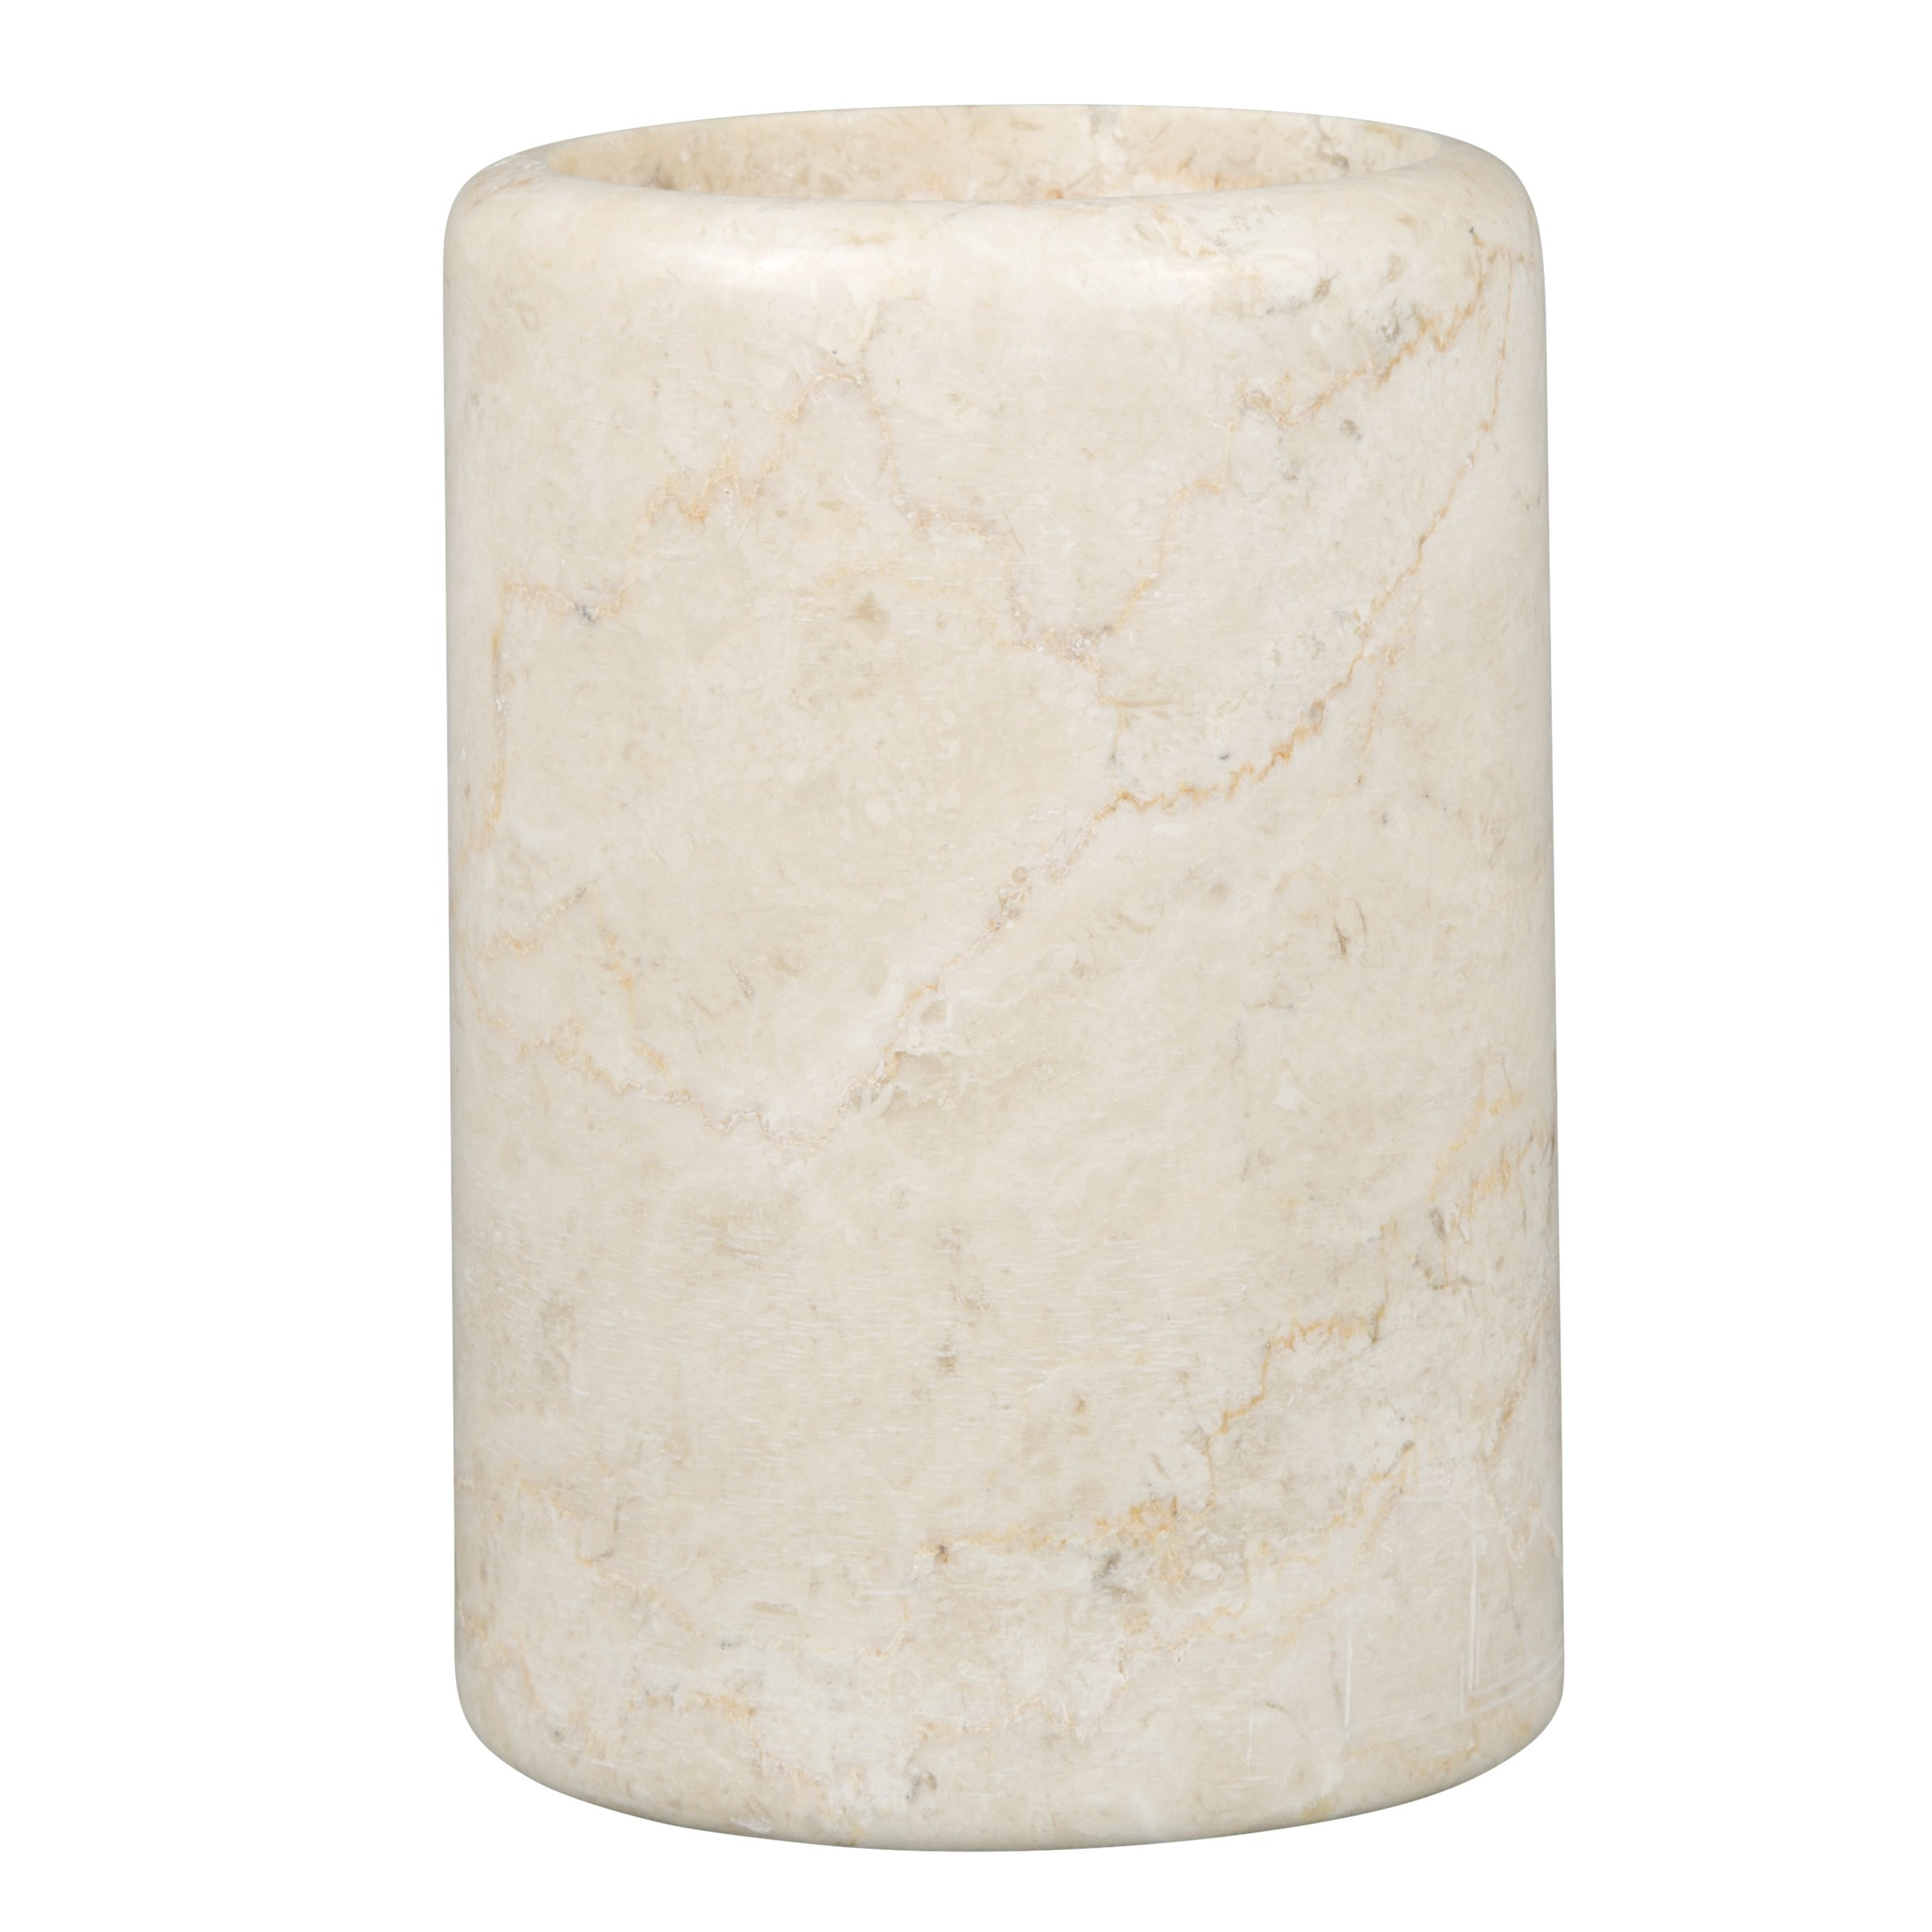 Creative Home Genuine Champagne Marble Stone Tumbler, Spa Collection